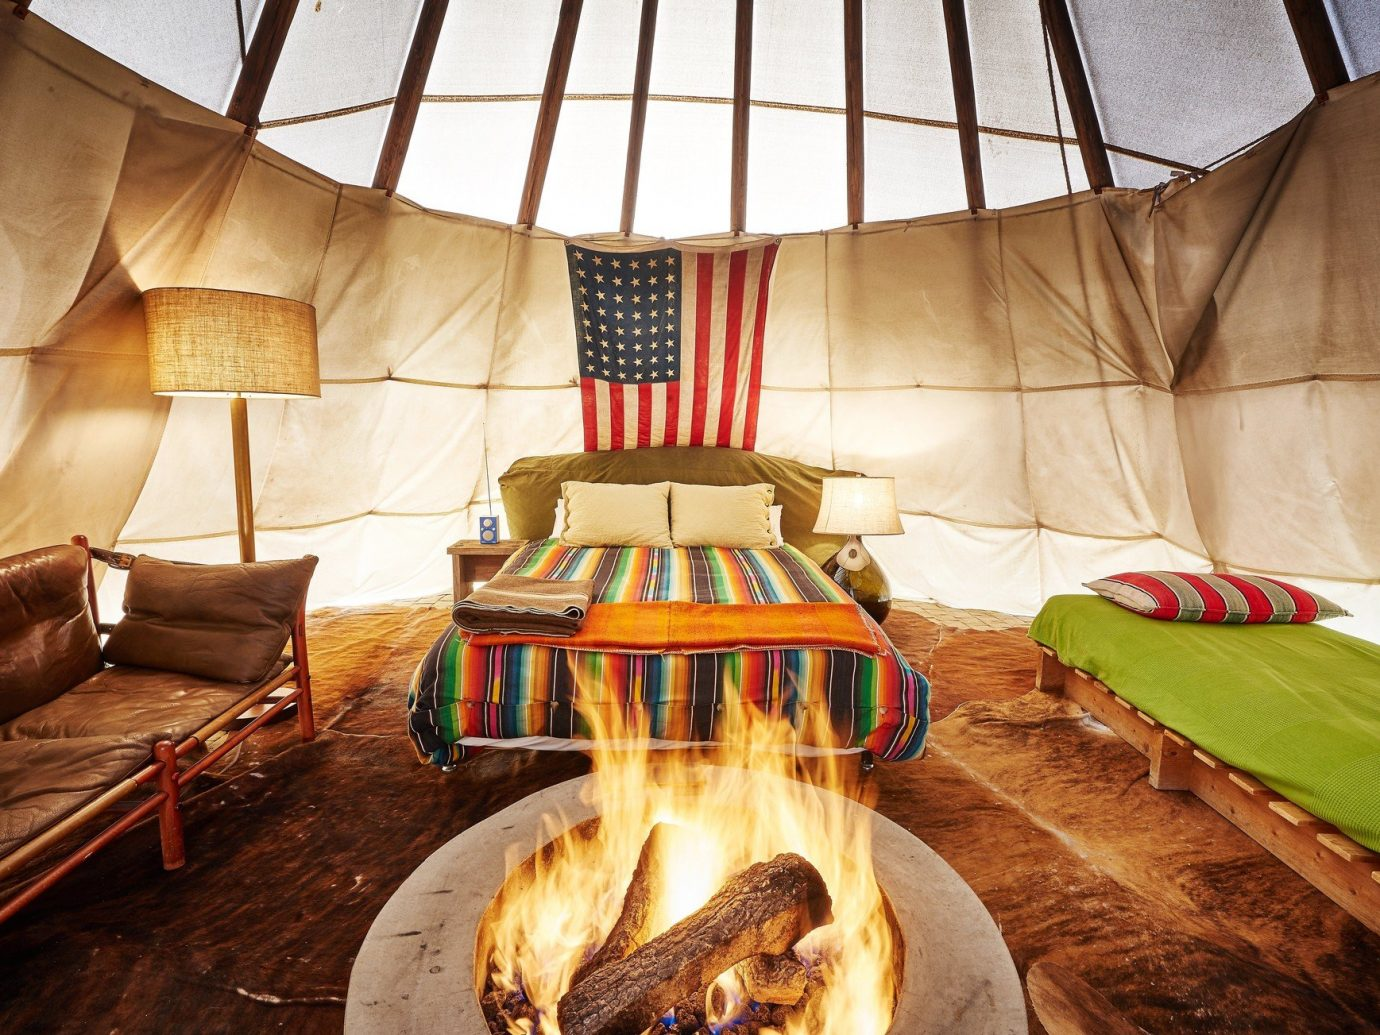 artistic artsy bed Bedroom cozy fire Firepit Fireplace Hip Hotels interior isolation living area quirky remote Solo Travel teepee trendy Trip Ideas indoor decorated bedclothes furniture